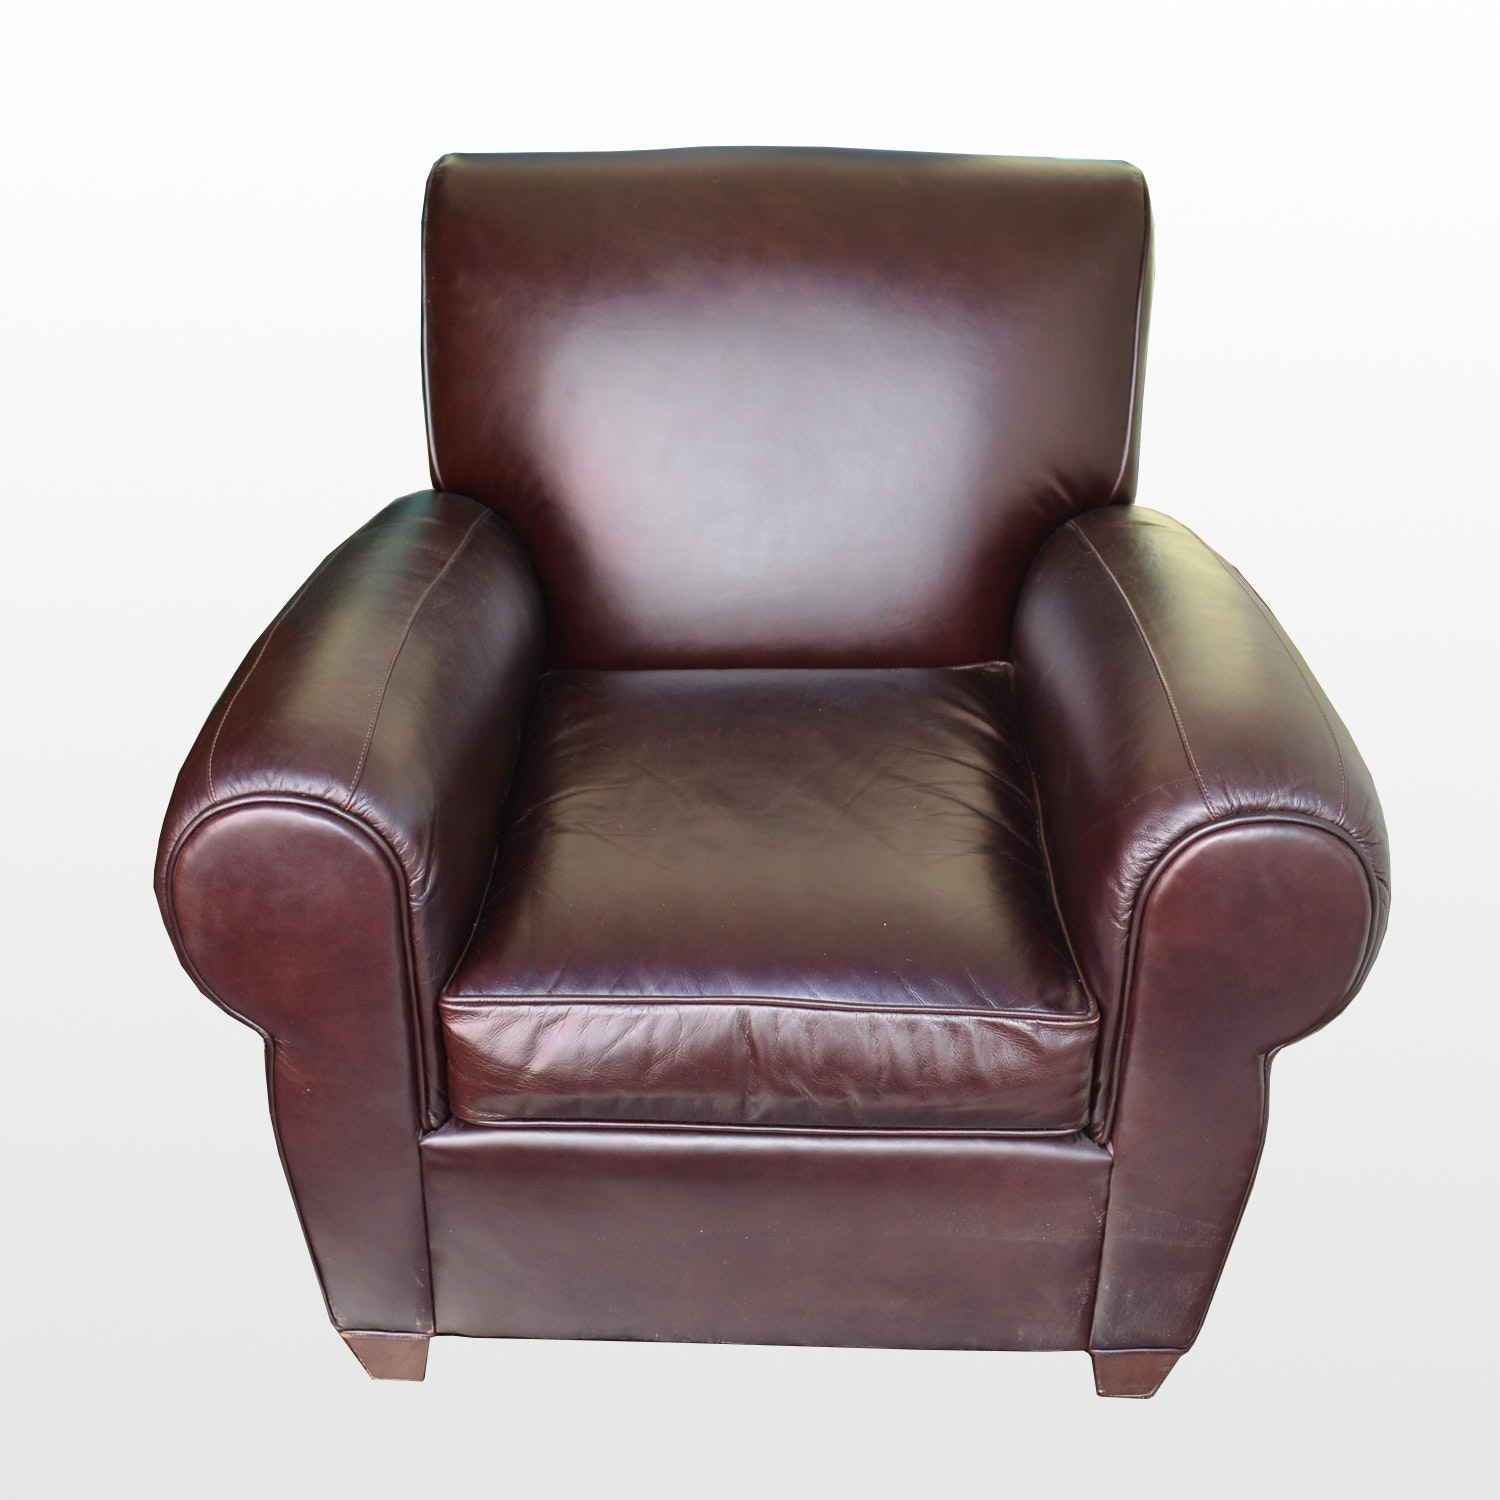 Pottery Barn Leather Club Chair